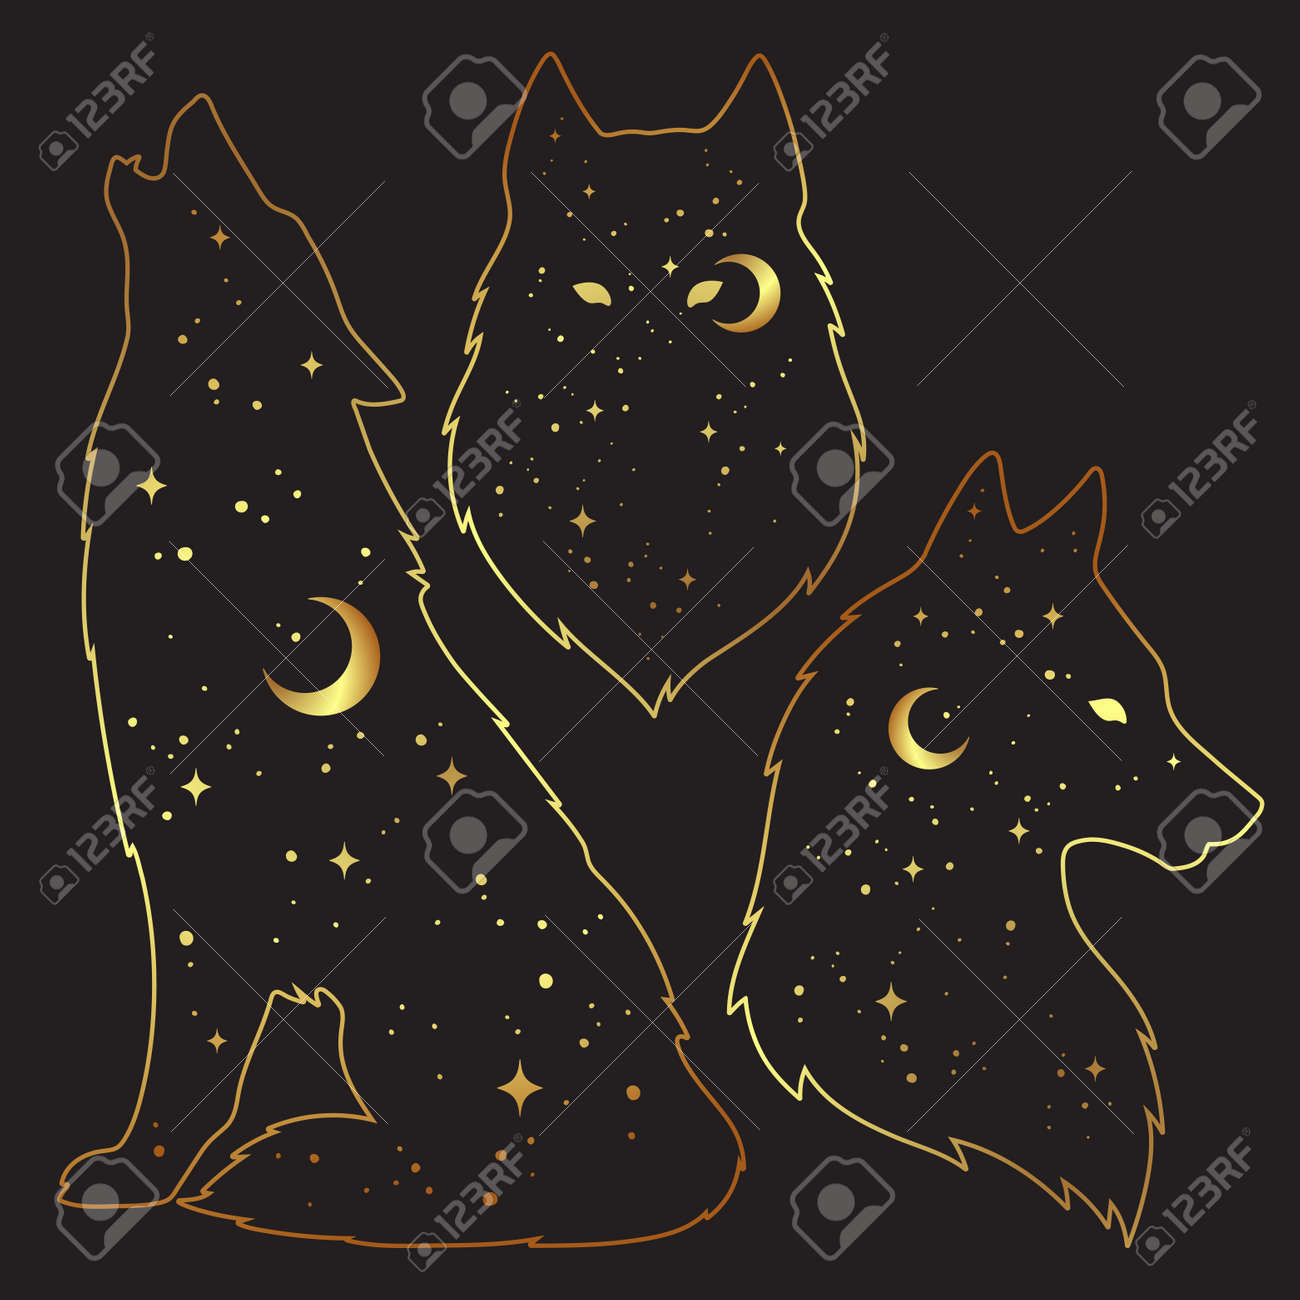 Set of wolf silhouettes with crescent moon and stars isolated. Sticker, print or tattoo design vector illustration. Pagan totem, wiccan familiar spirit art. - 165651824